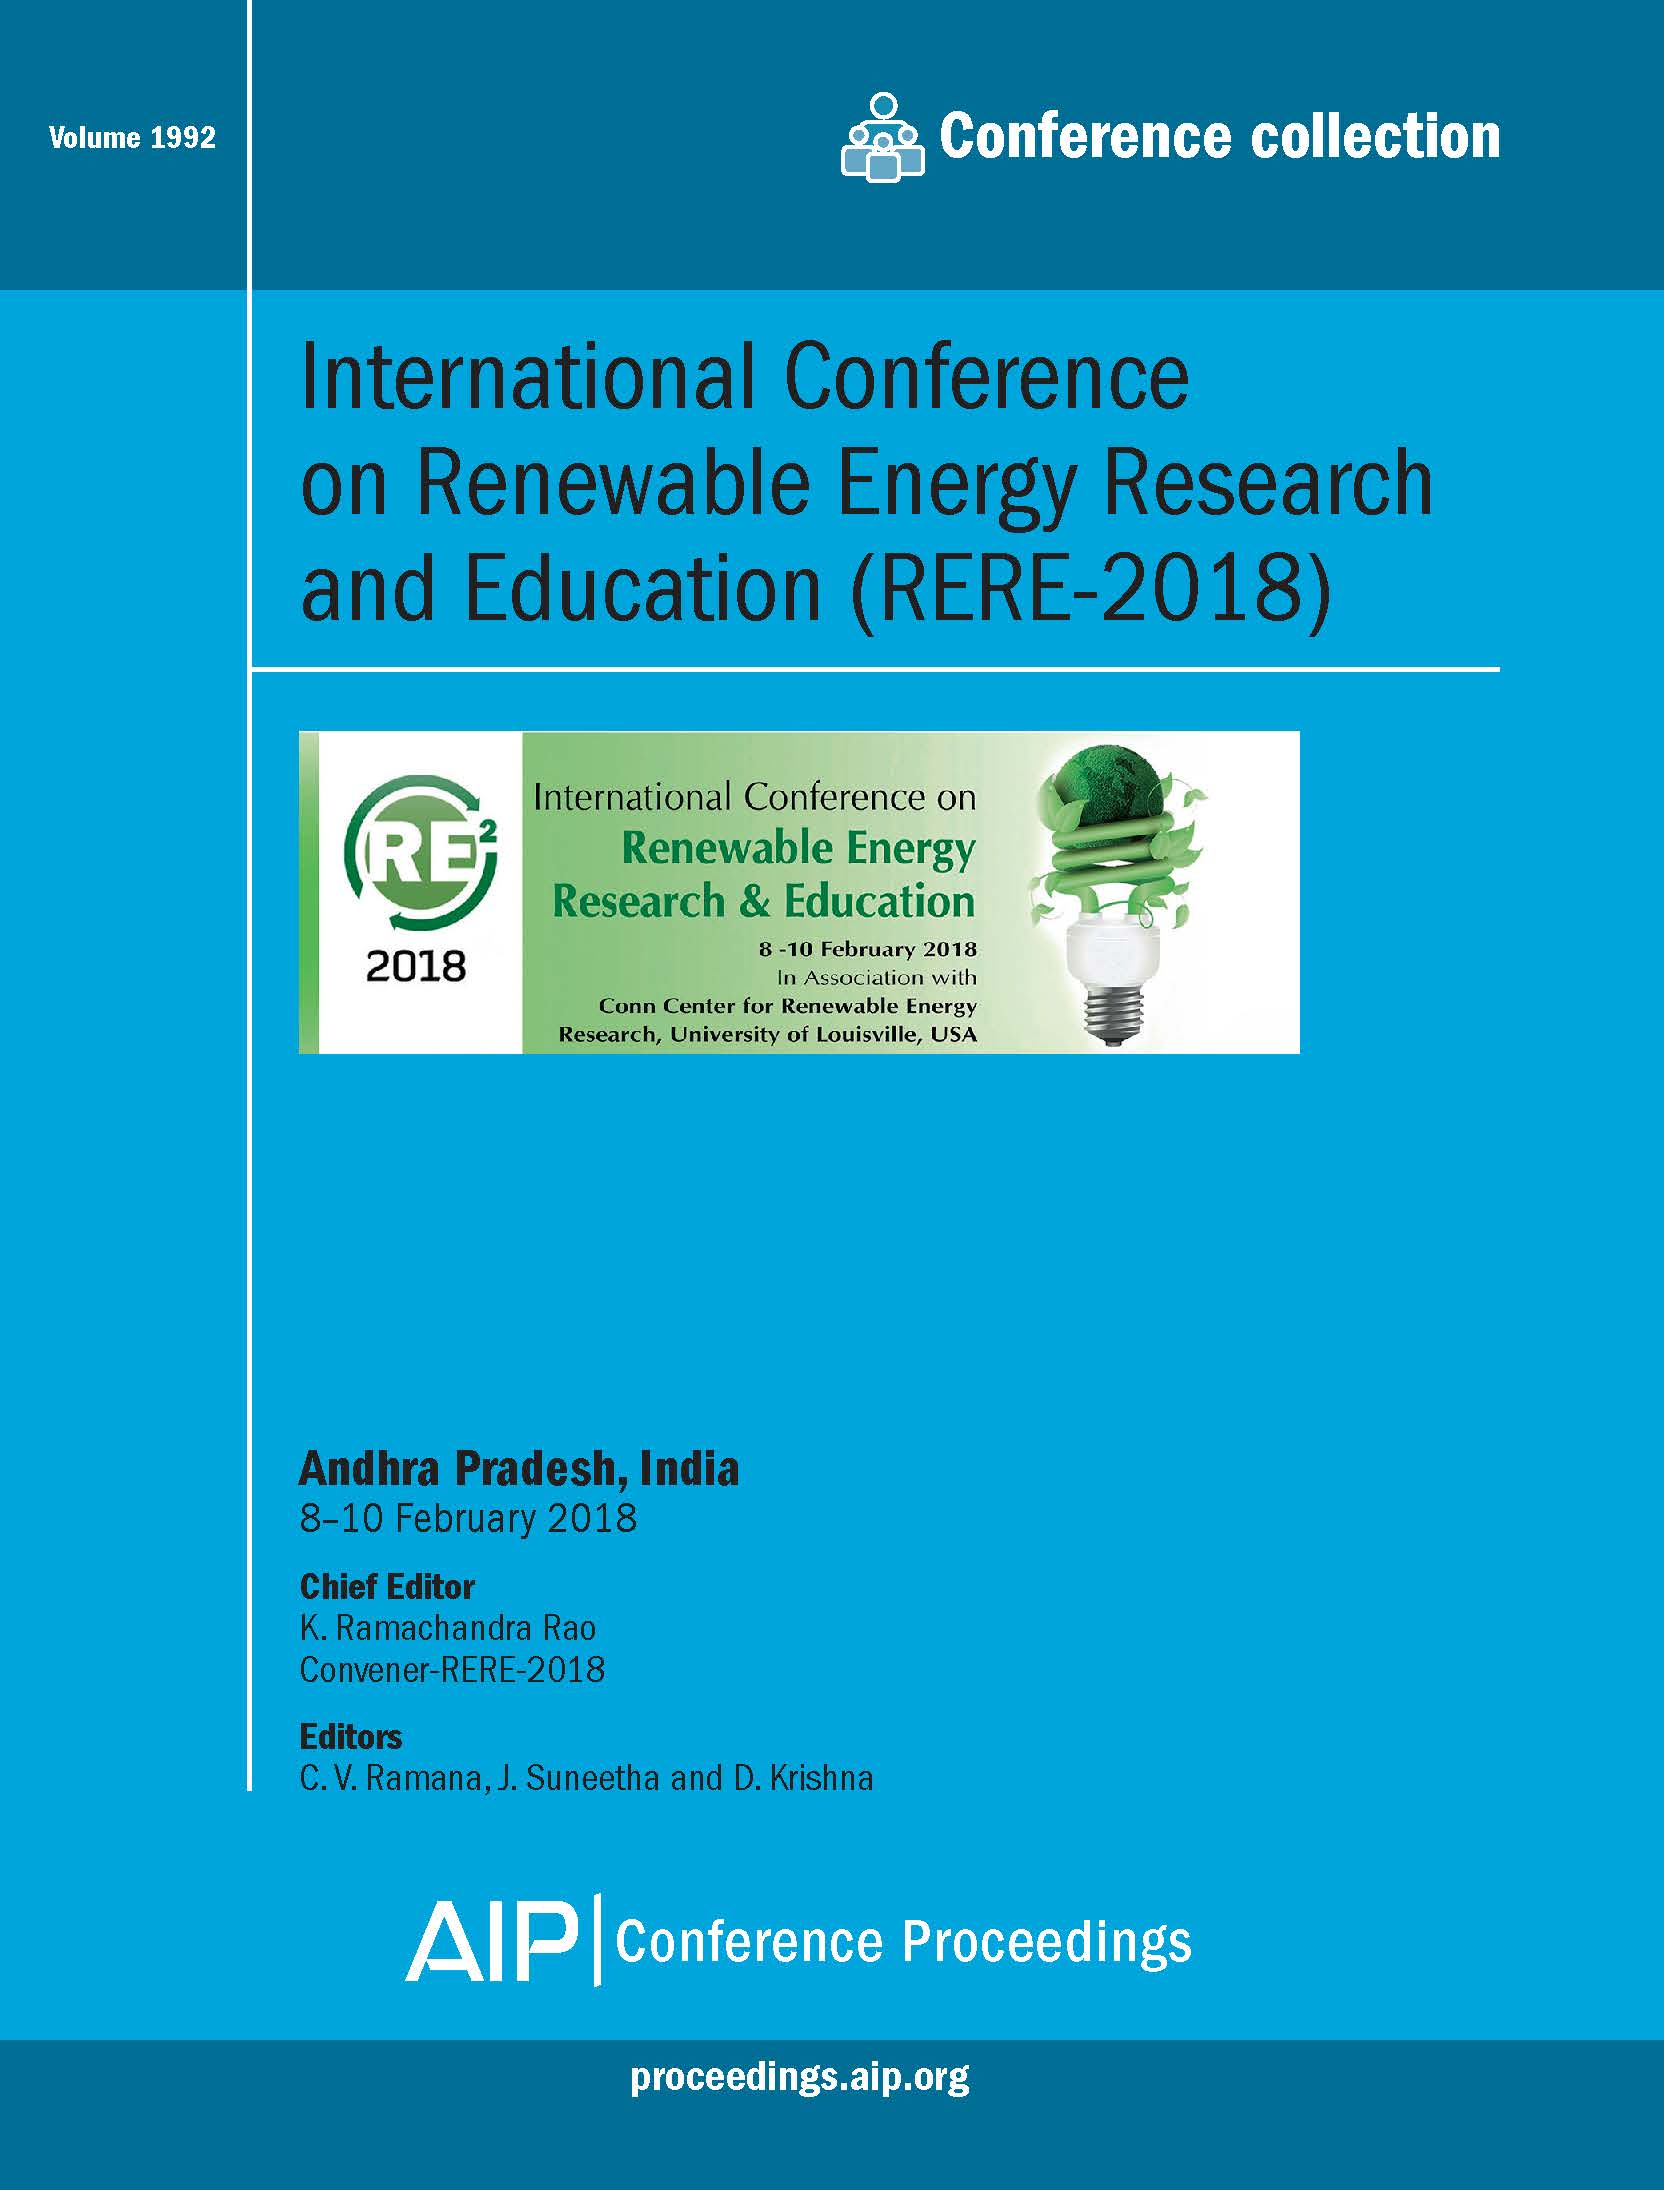 Volume 1992: International Conference on Renewable Energy Research